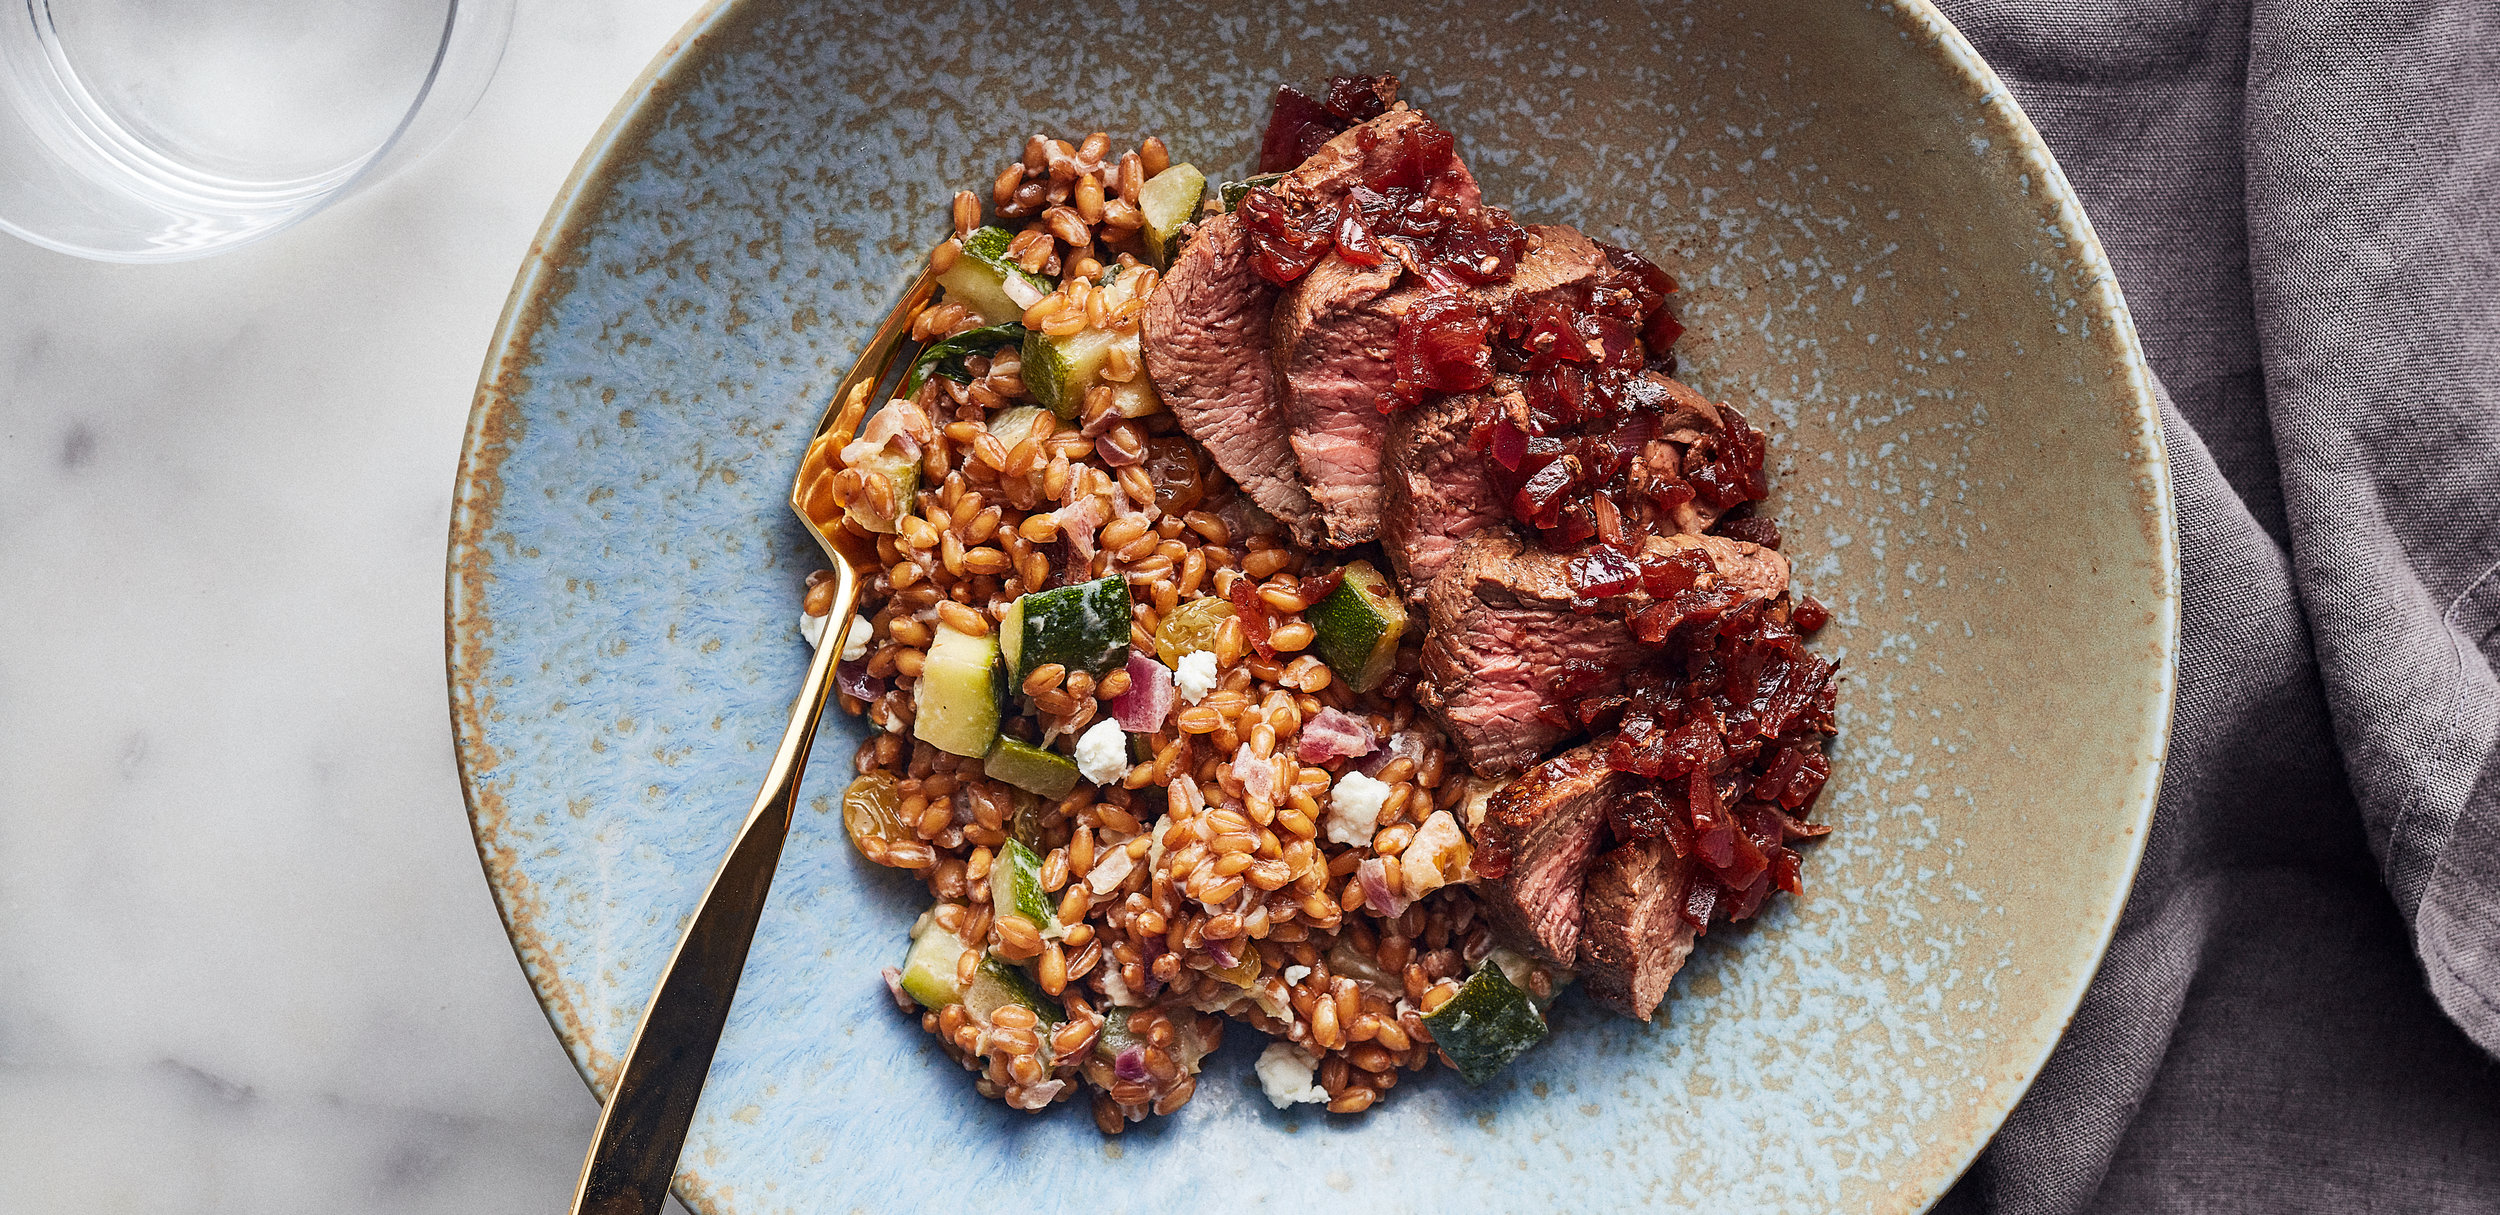 Steak and Wheat Berry Salad with Zucchini and Goat Cheese — 0011 — HERO.jpg